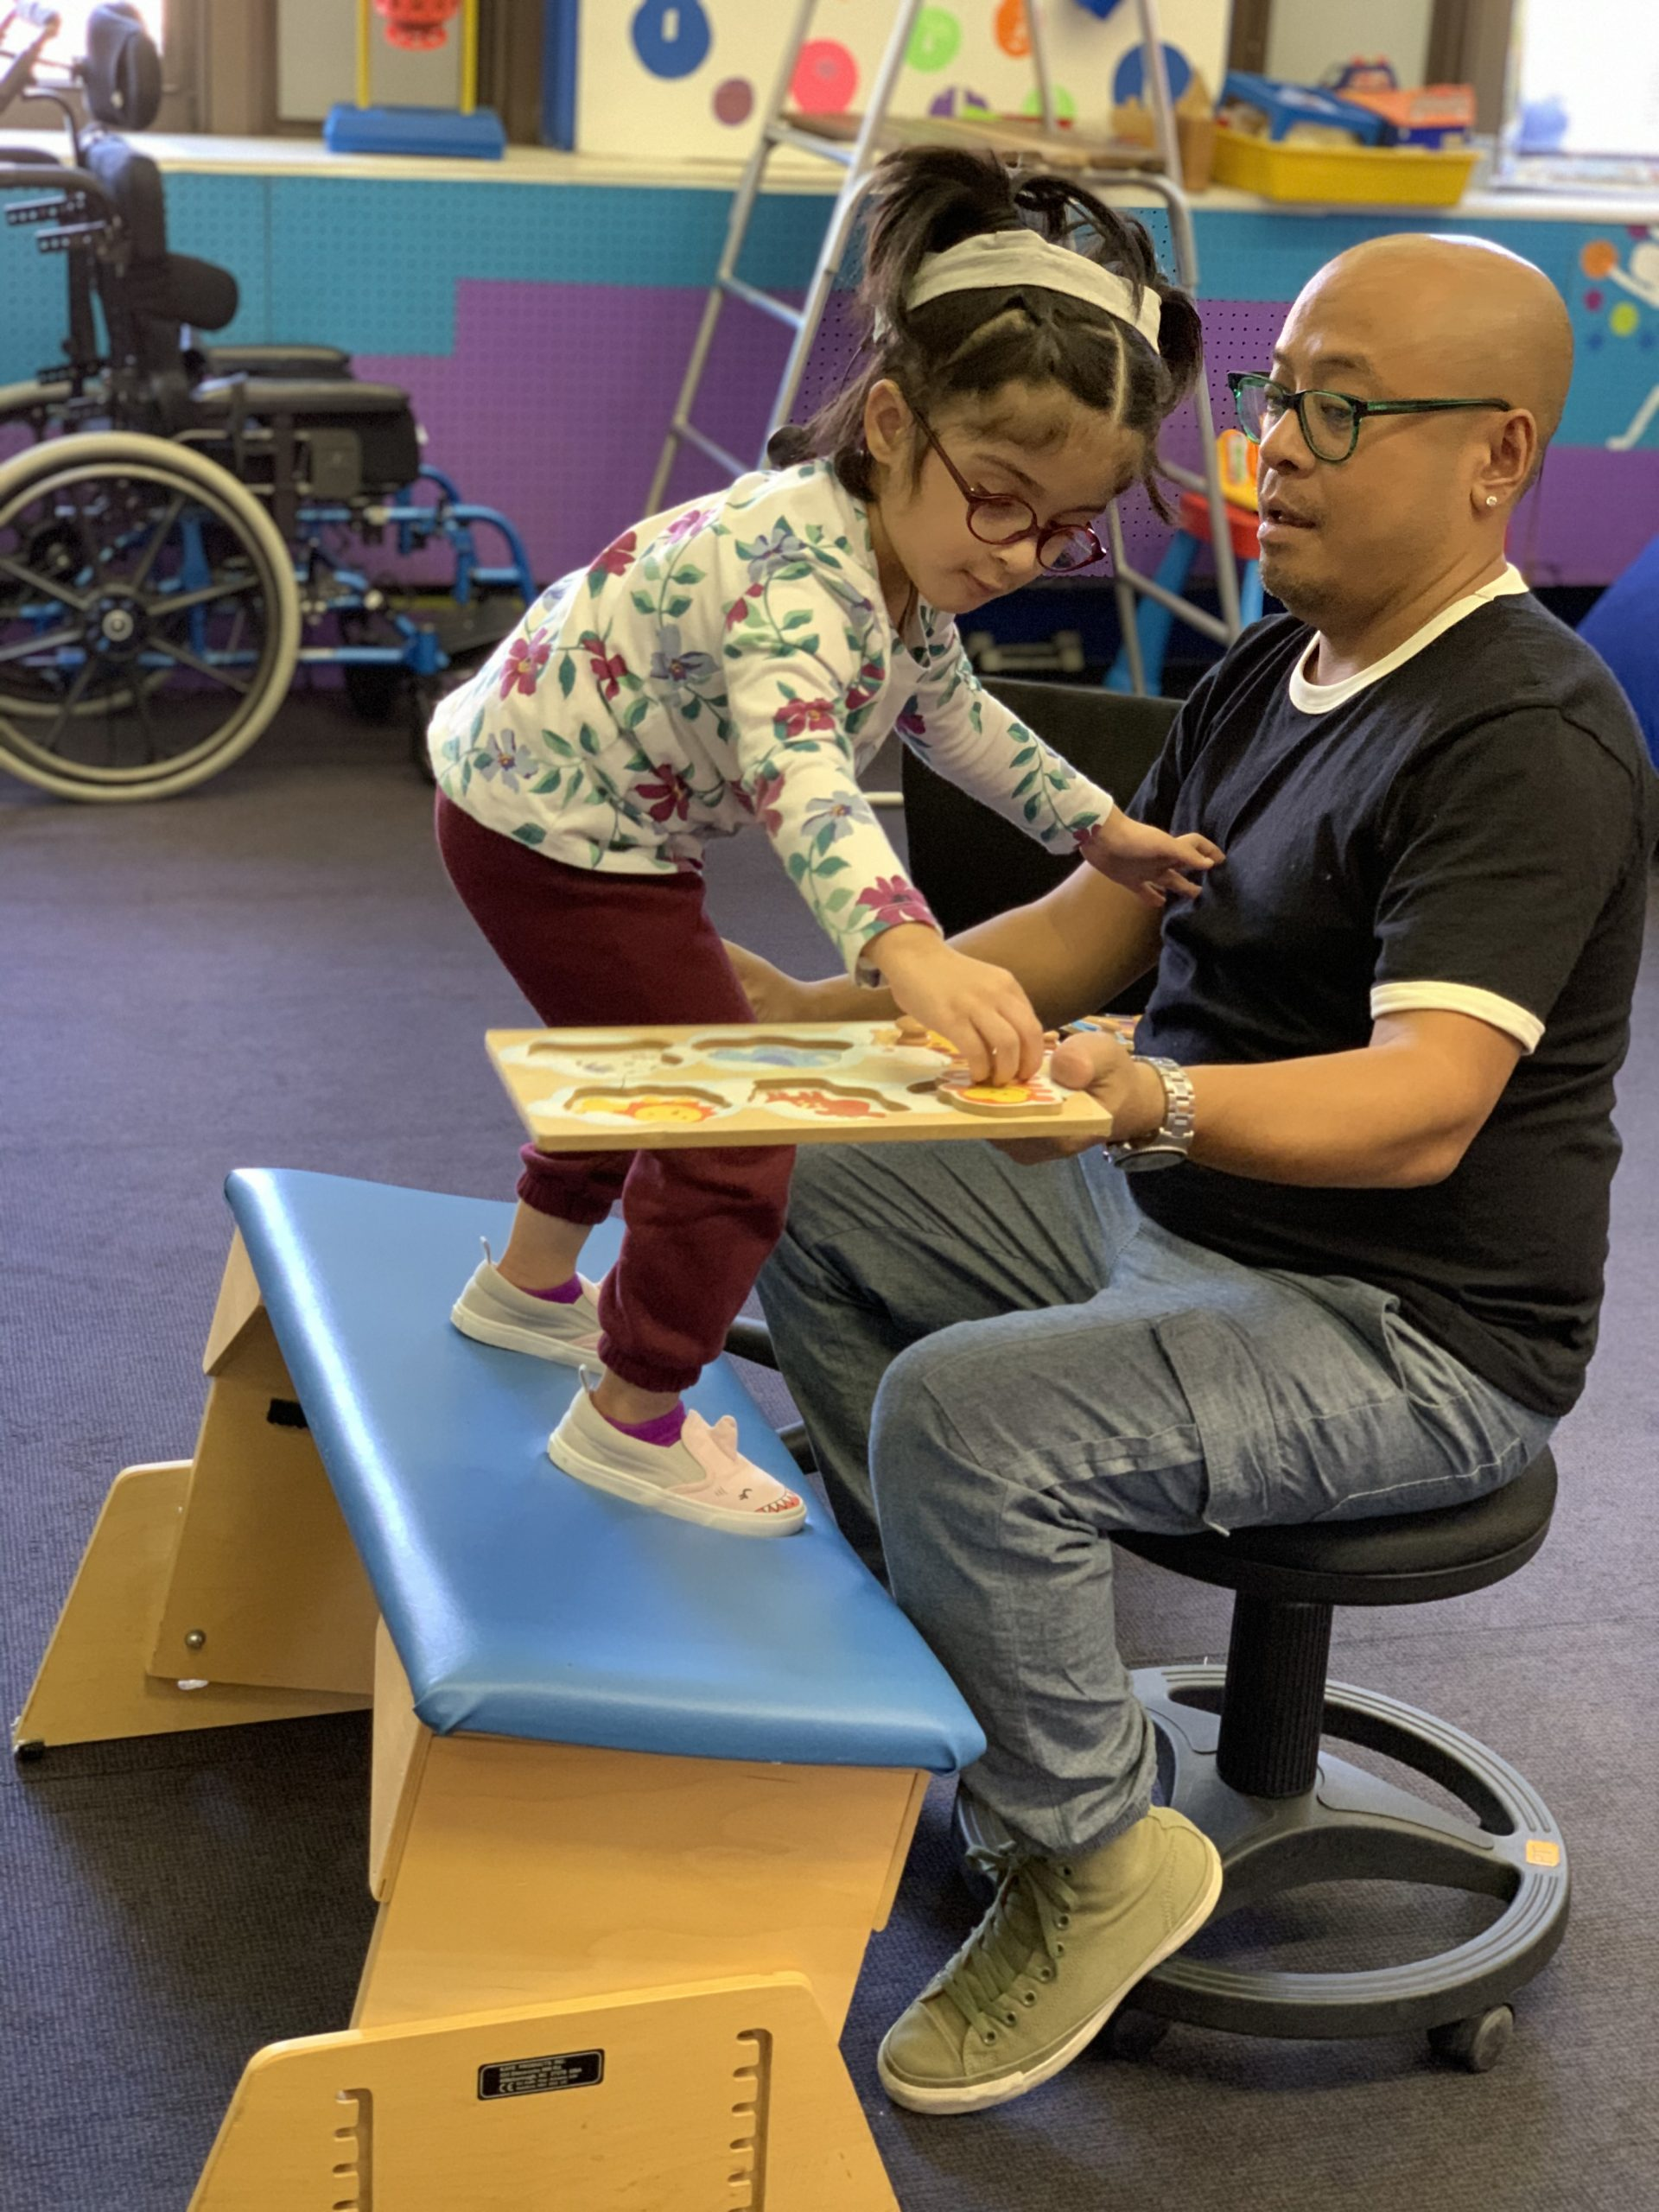 A female preschool student is balancing on a rocking therapy bench as she works on a puzzle with knobs. A male physical therapist is sitting in front of the student and is holding the board of the puzzle.